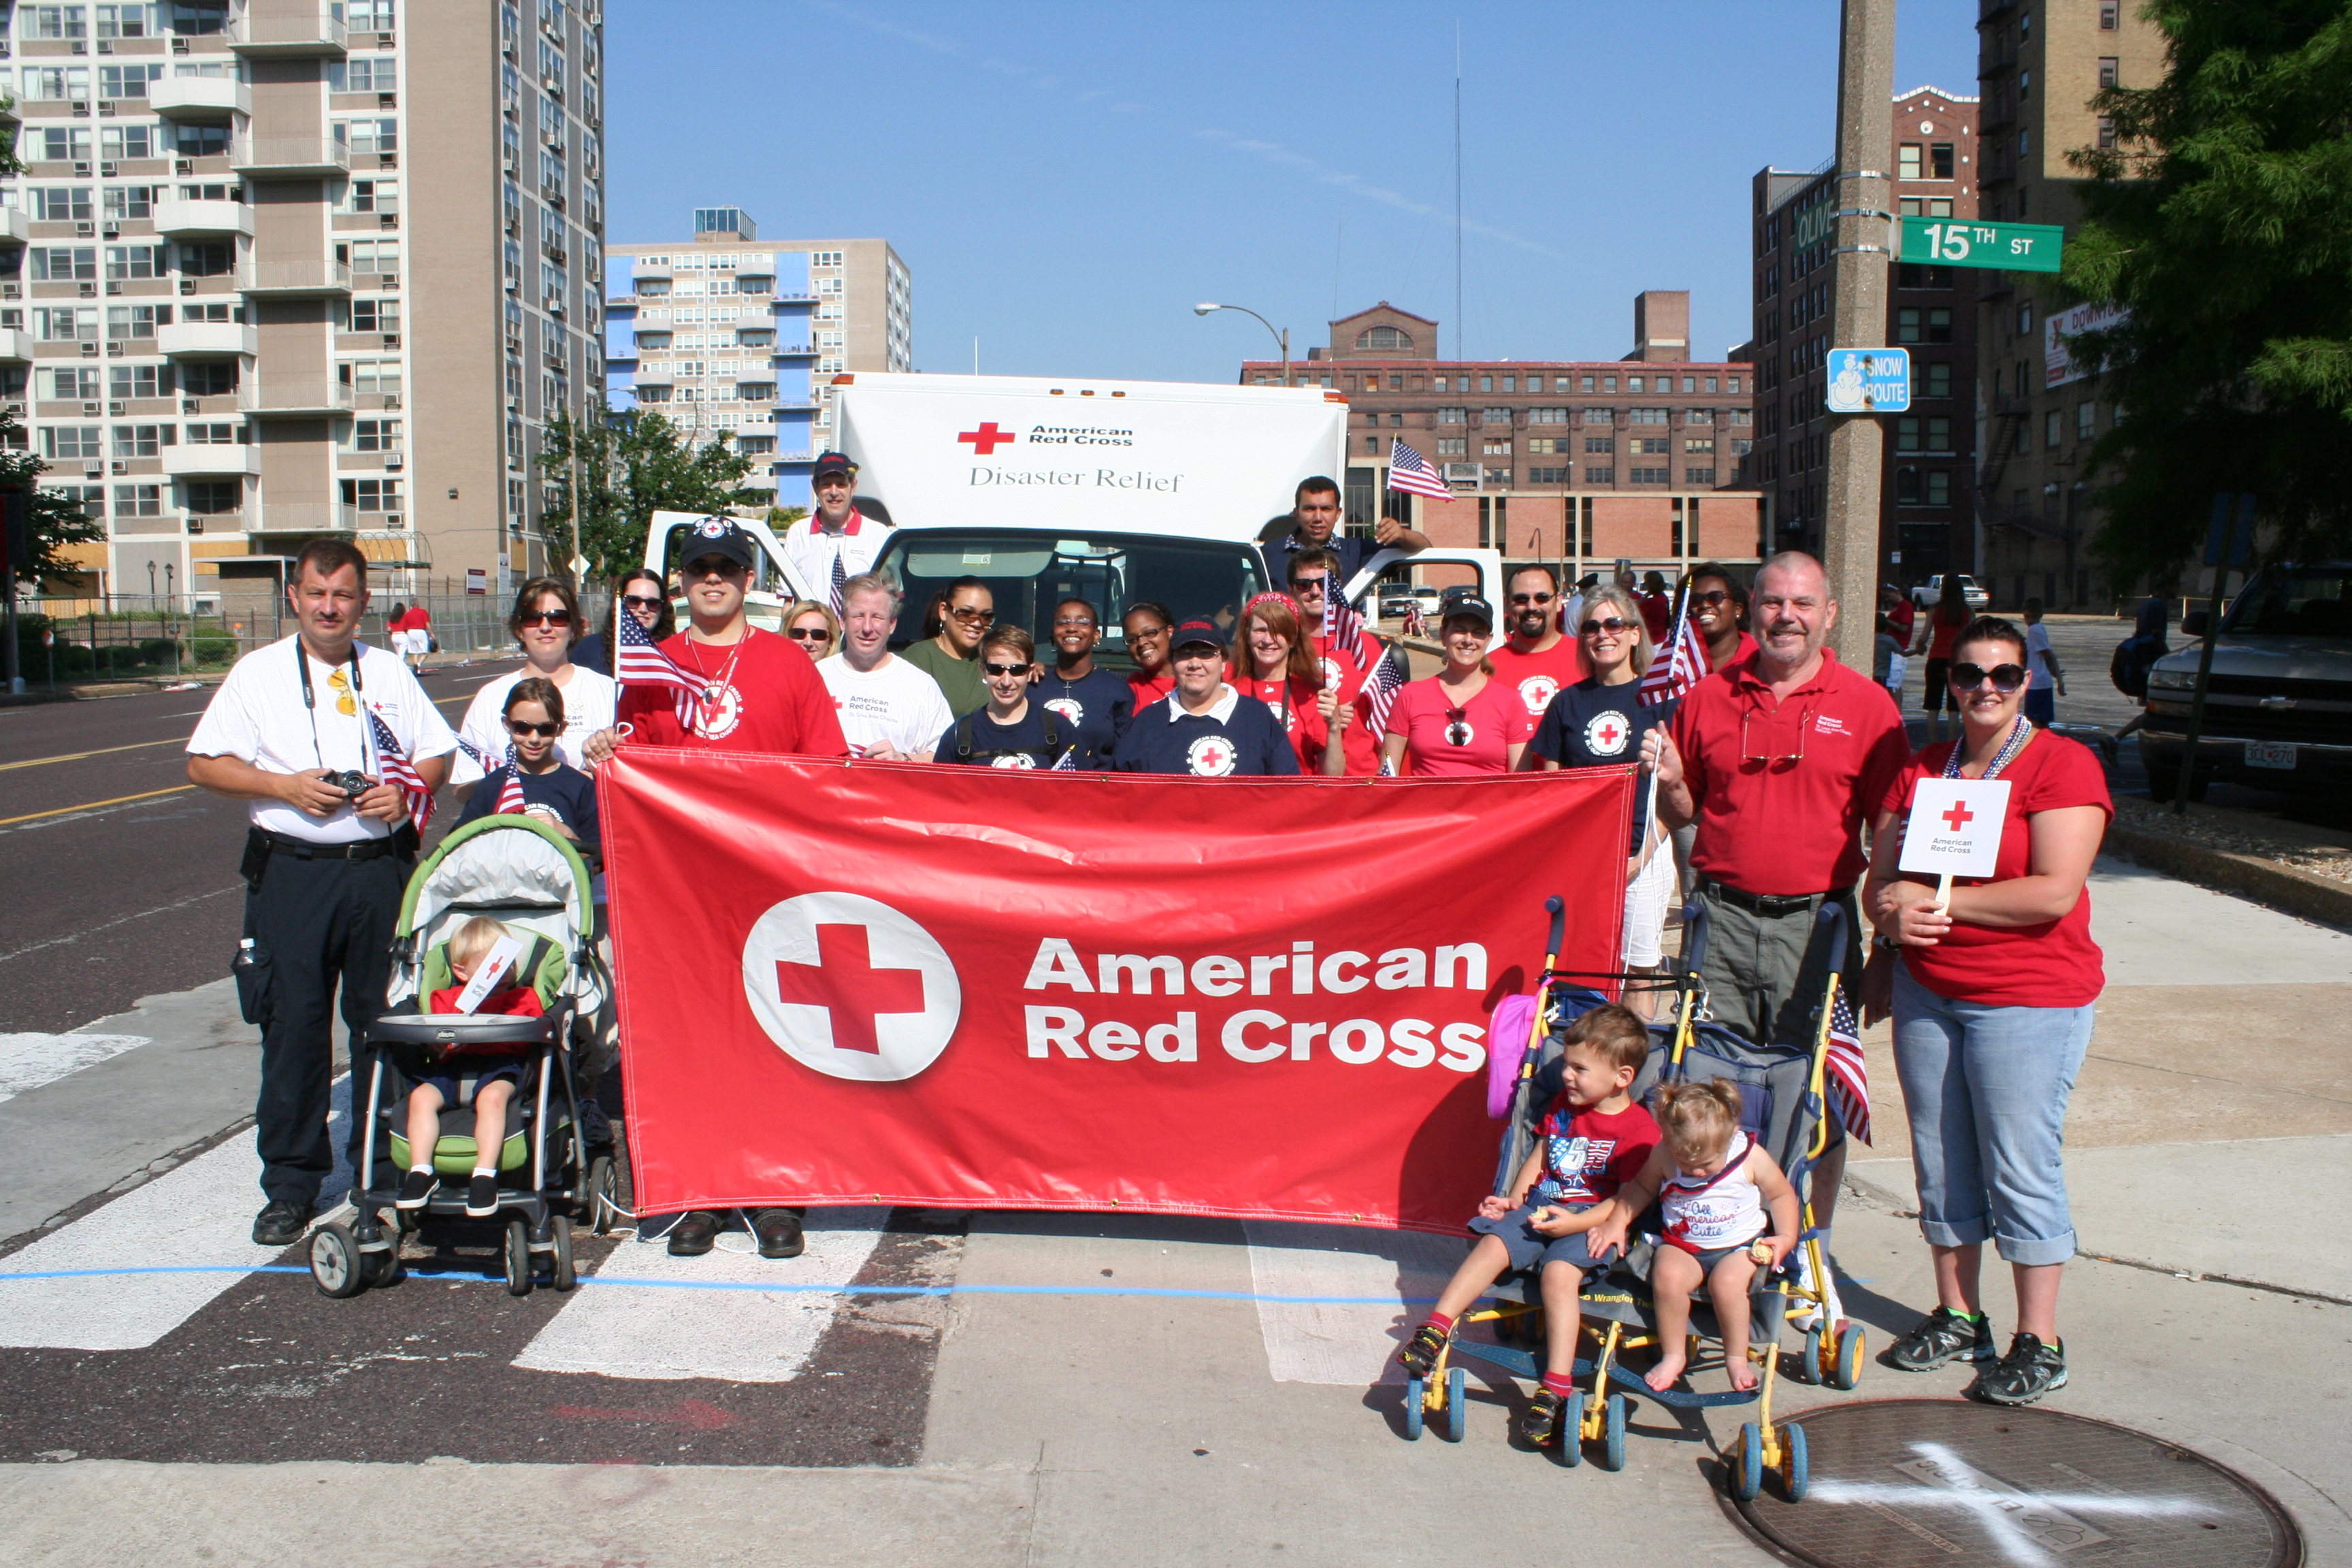 A Happy 4th Of July With The American Red Cross